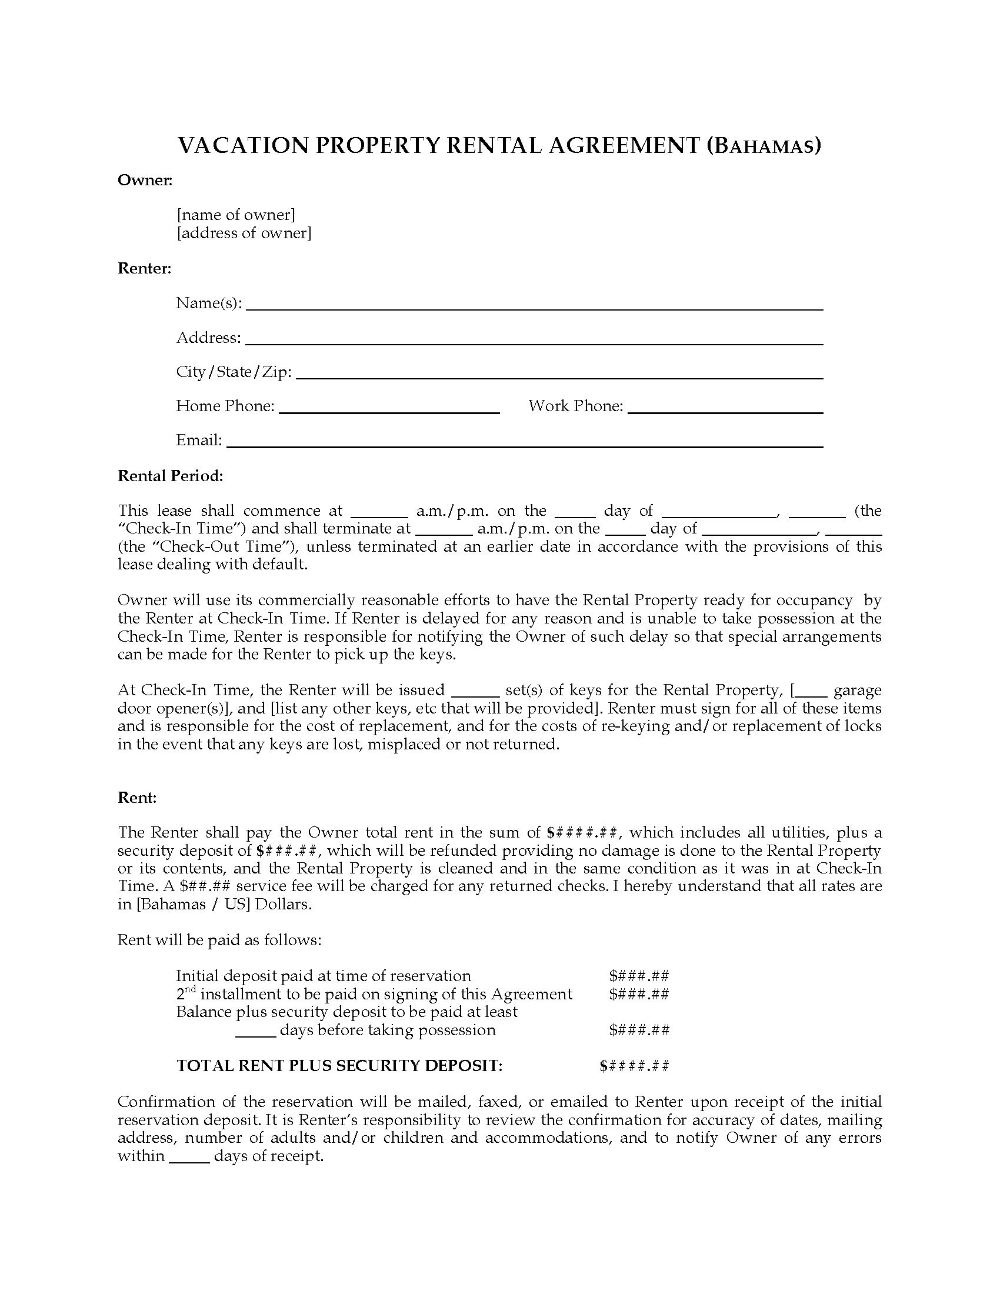 Bahamas Vacation Property Rental Agreement Legal Forms And Throughout Vacation Home Rental A Rental Agreement Templates Vacation Property Vacation Home Rentals